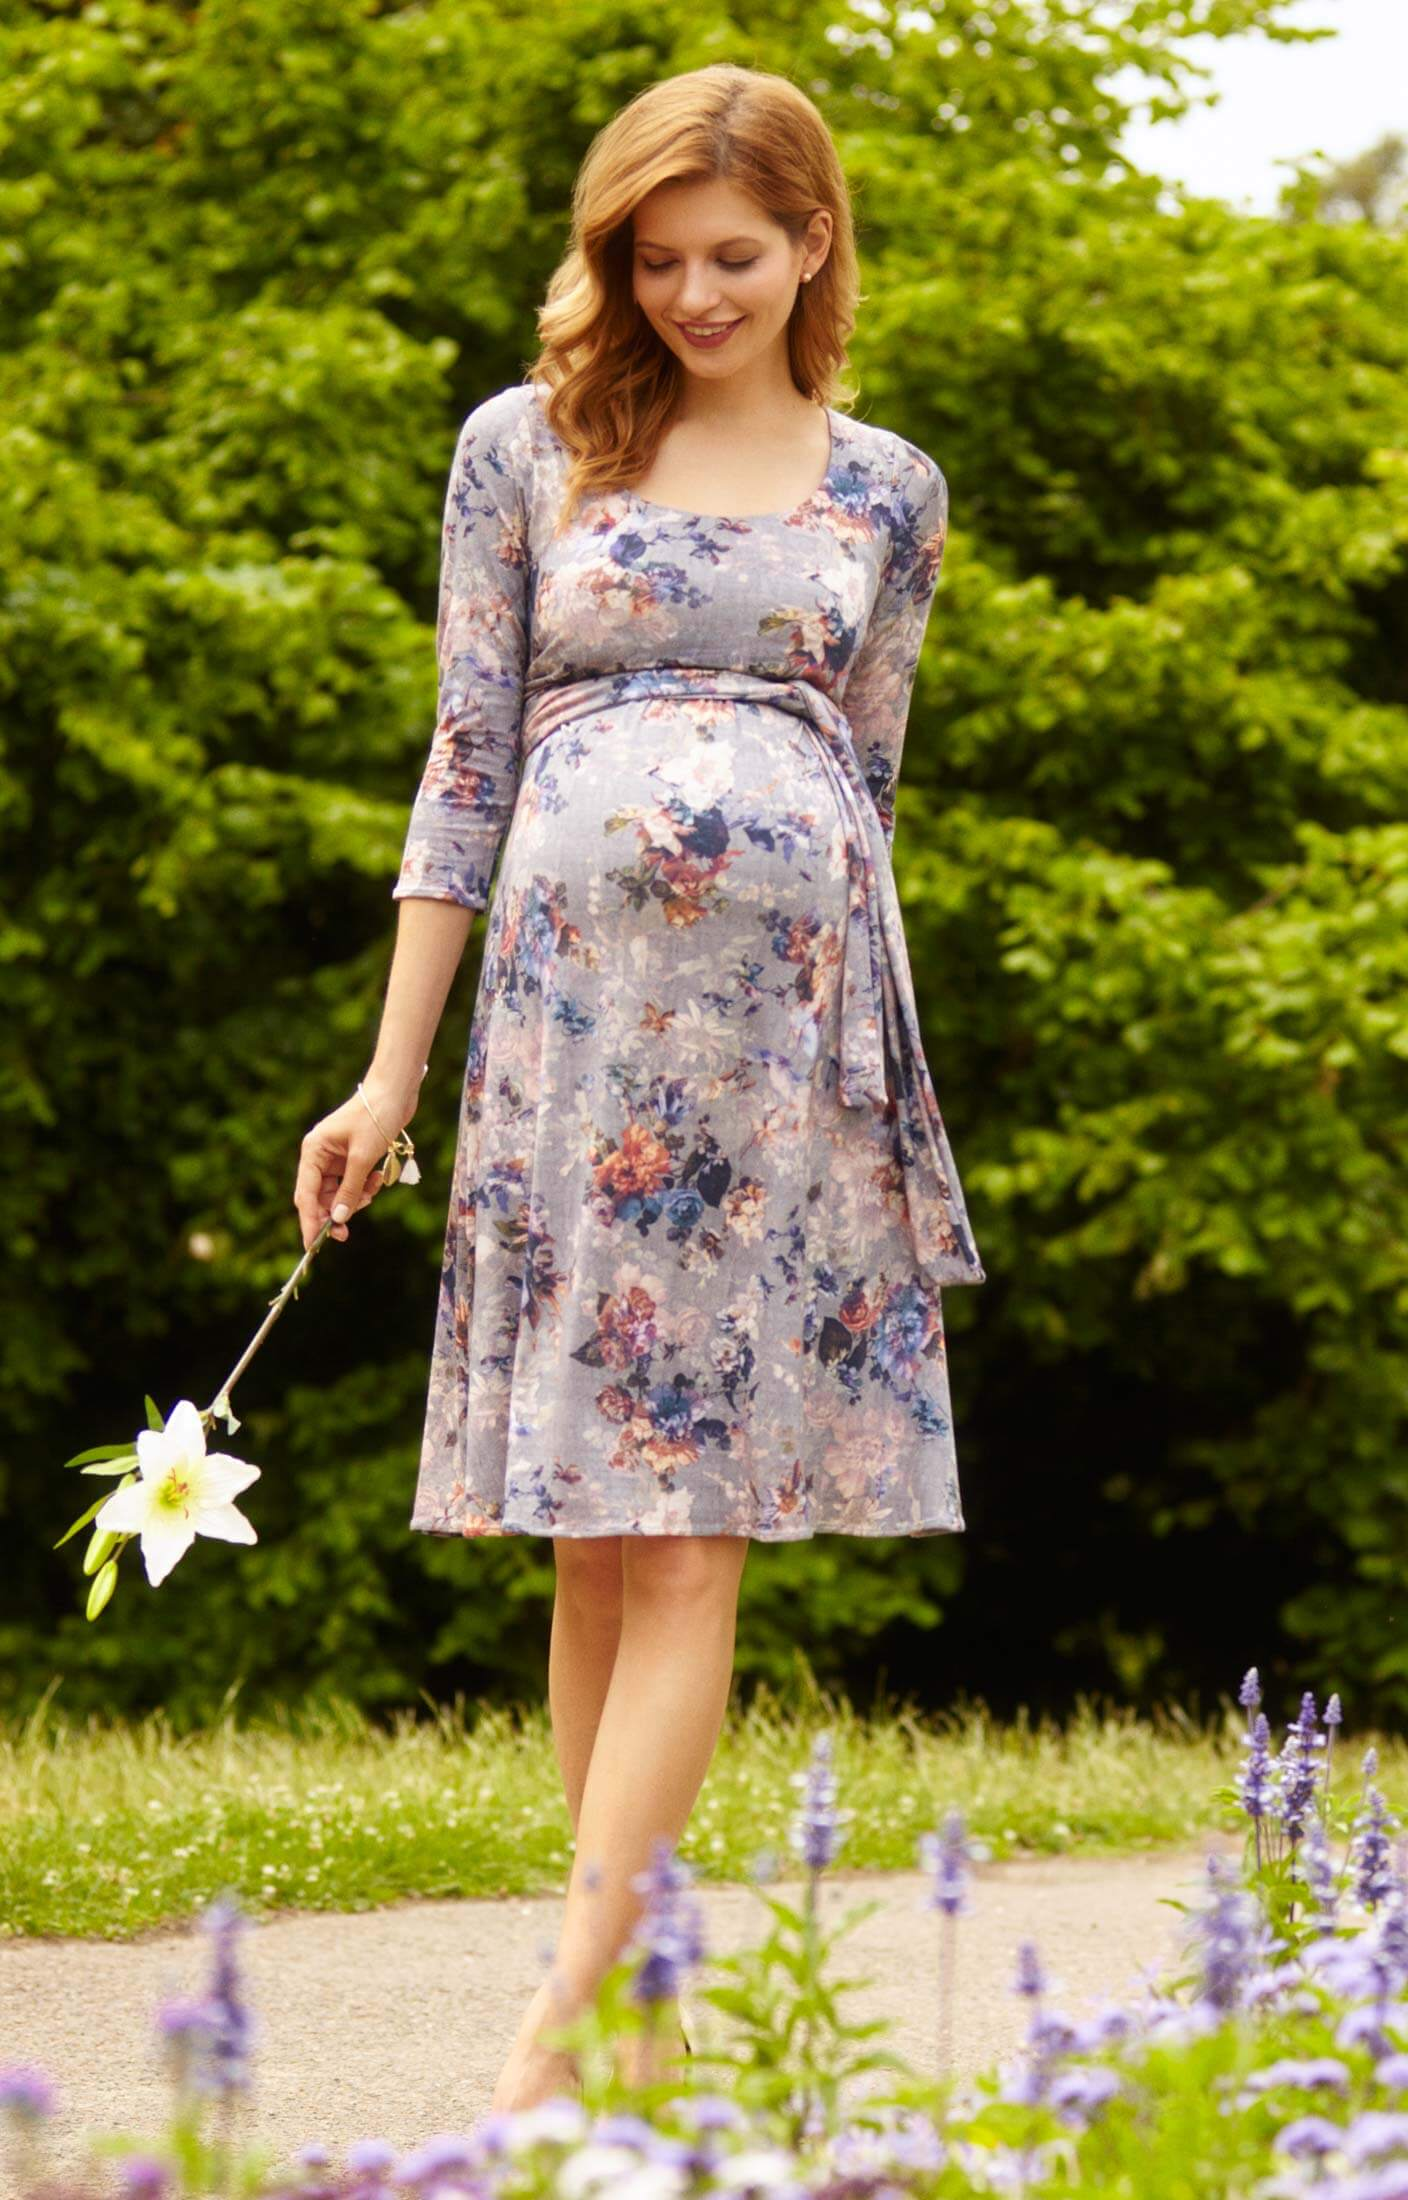 c6bf805ce2 Naomi Nursing Dress Vintage Bloom - Maternity Wedding Dresses ...